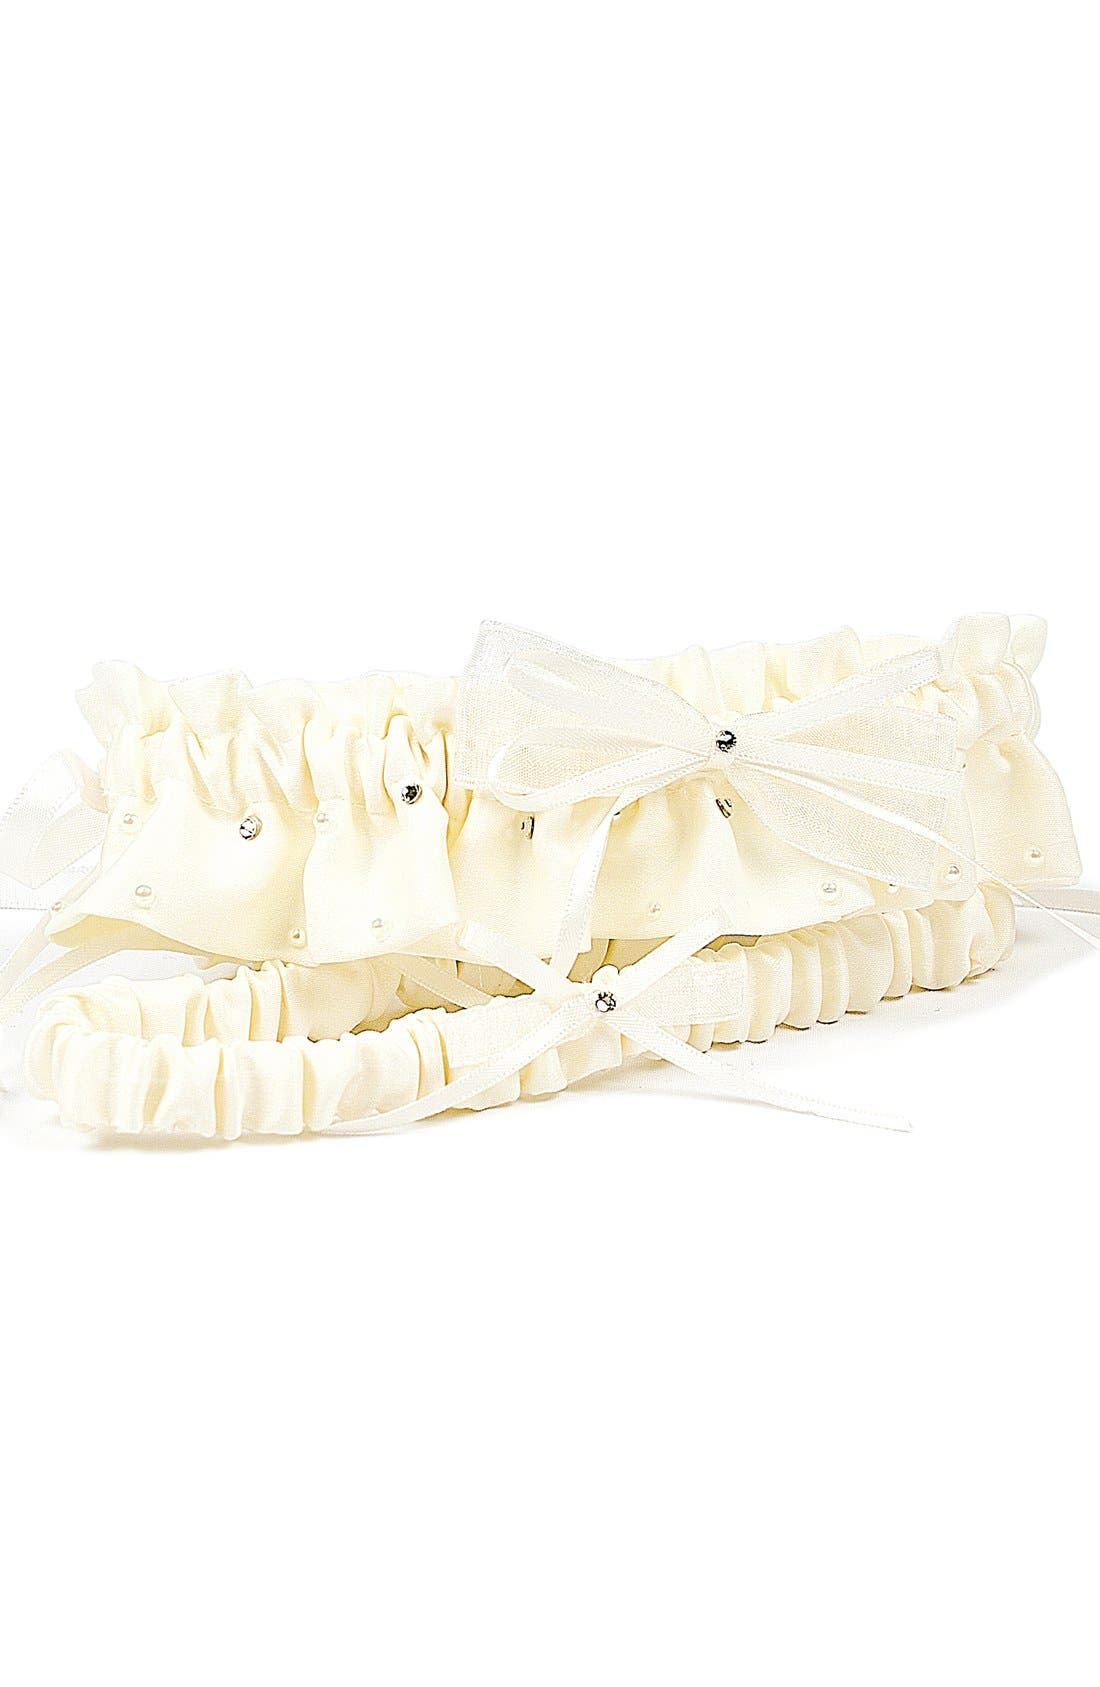 Alternate Image 1 Selected - Cathy's Concepts 'Candlelight' Adjustable Wedding Garter